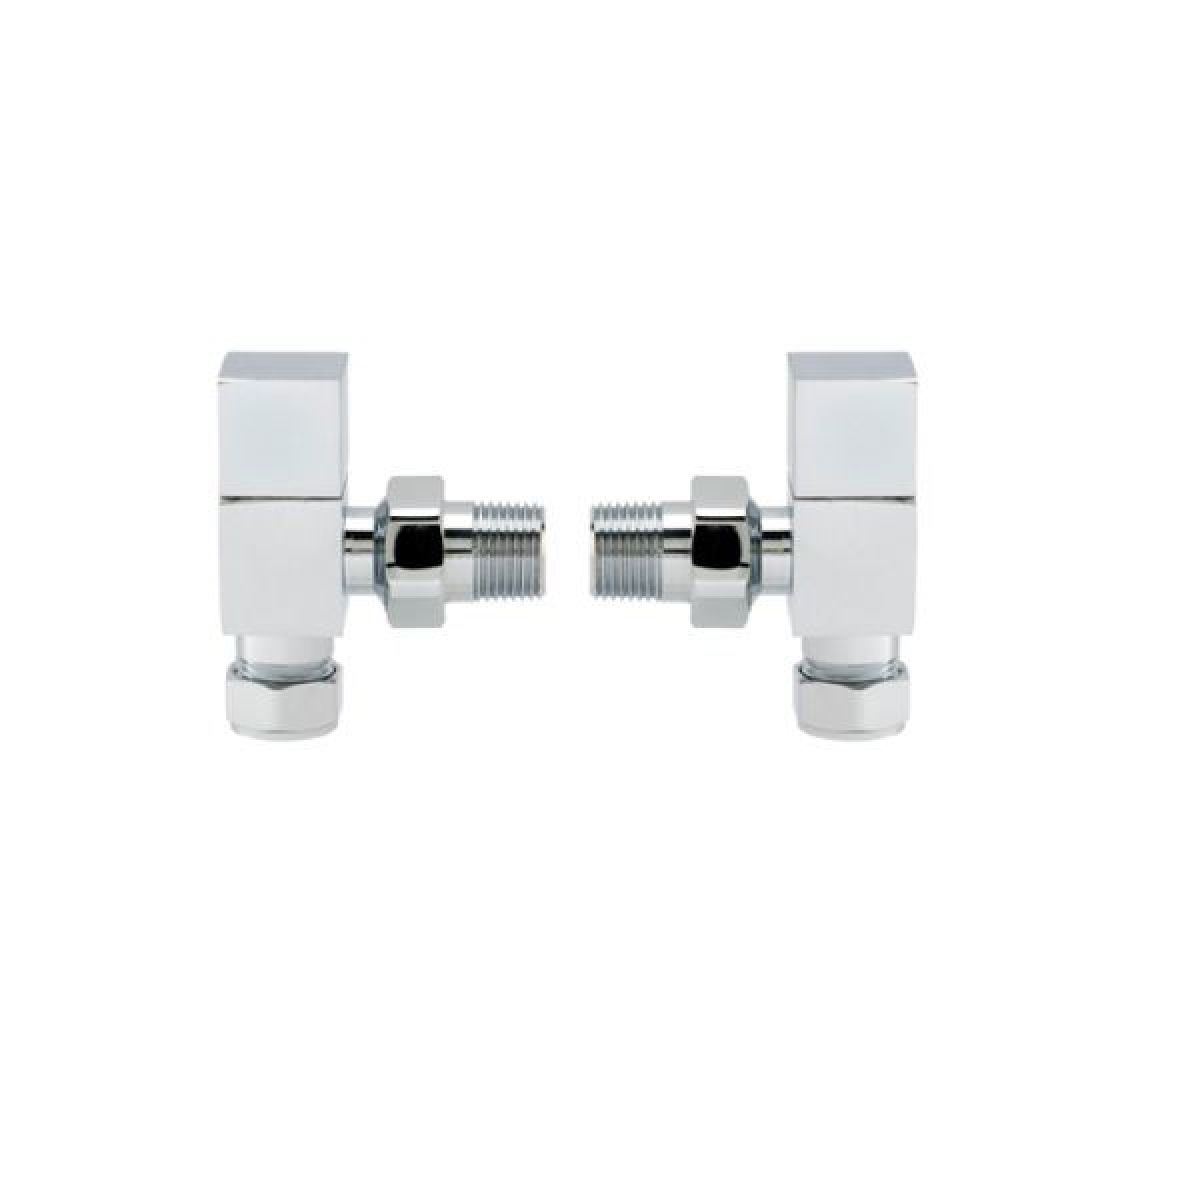 Zenith Angled Square Head Valve Set